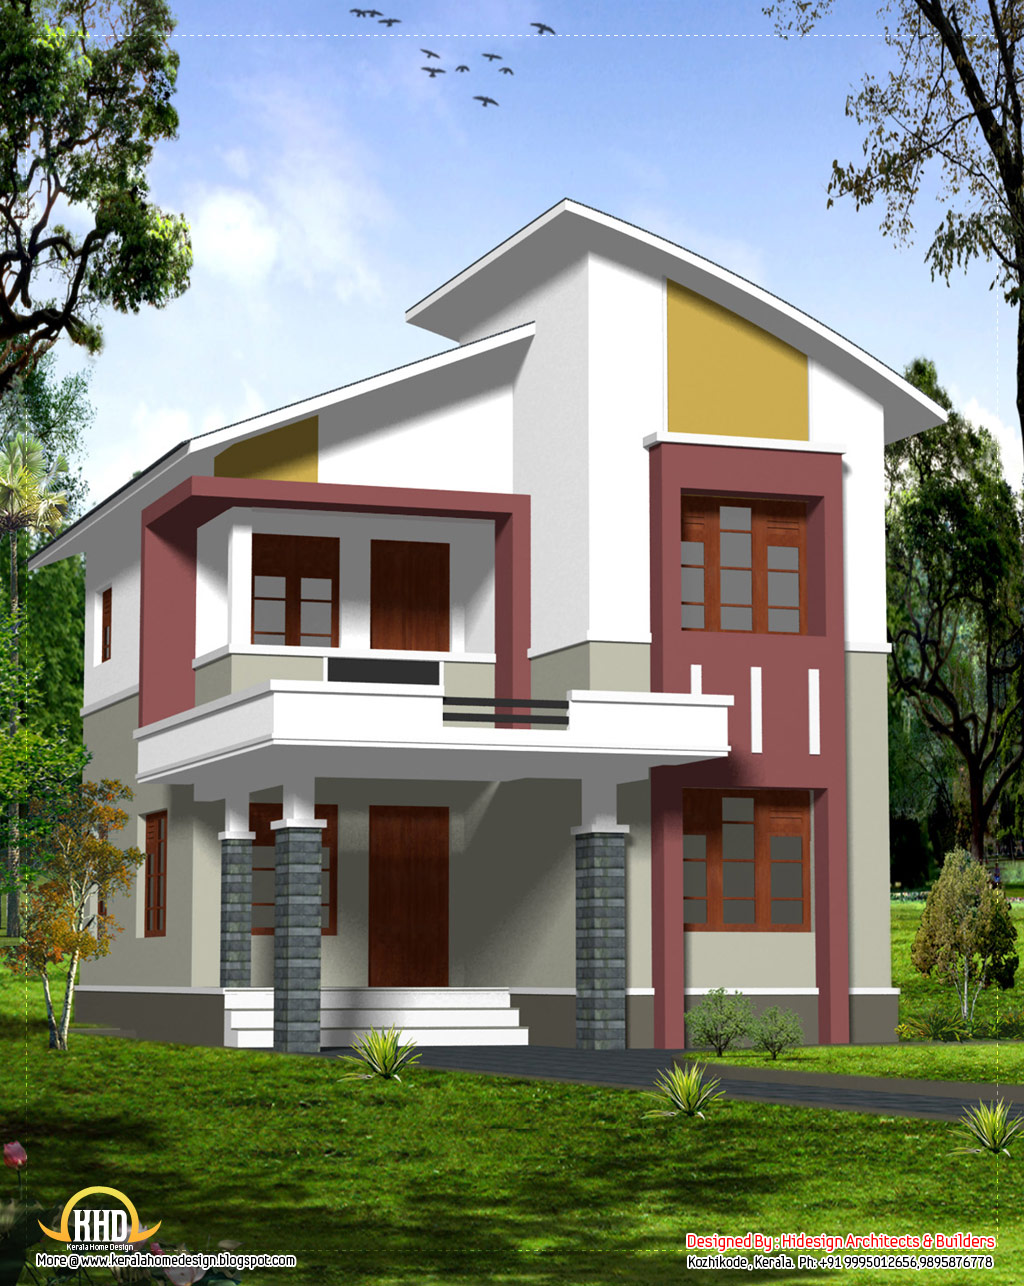 Budget home design 2140 sq ft kerala home design and for Home blueprint ideas